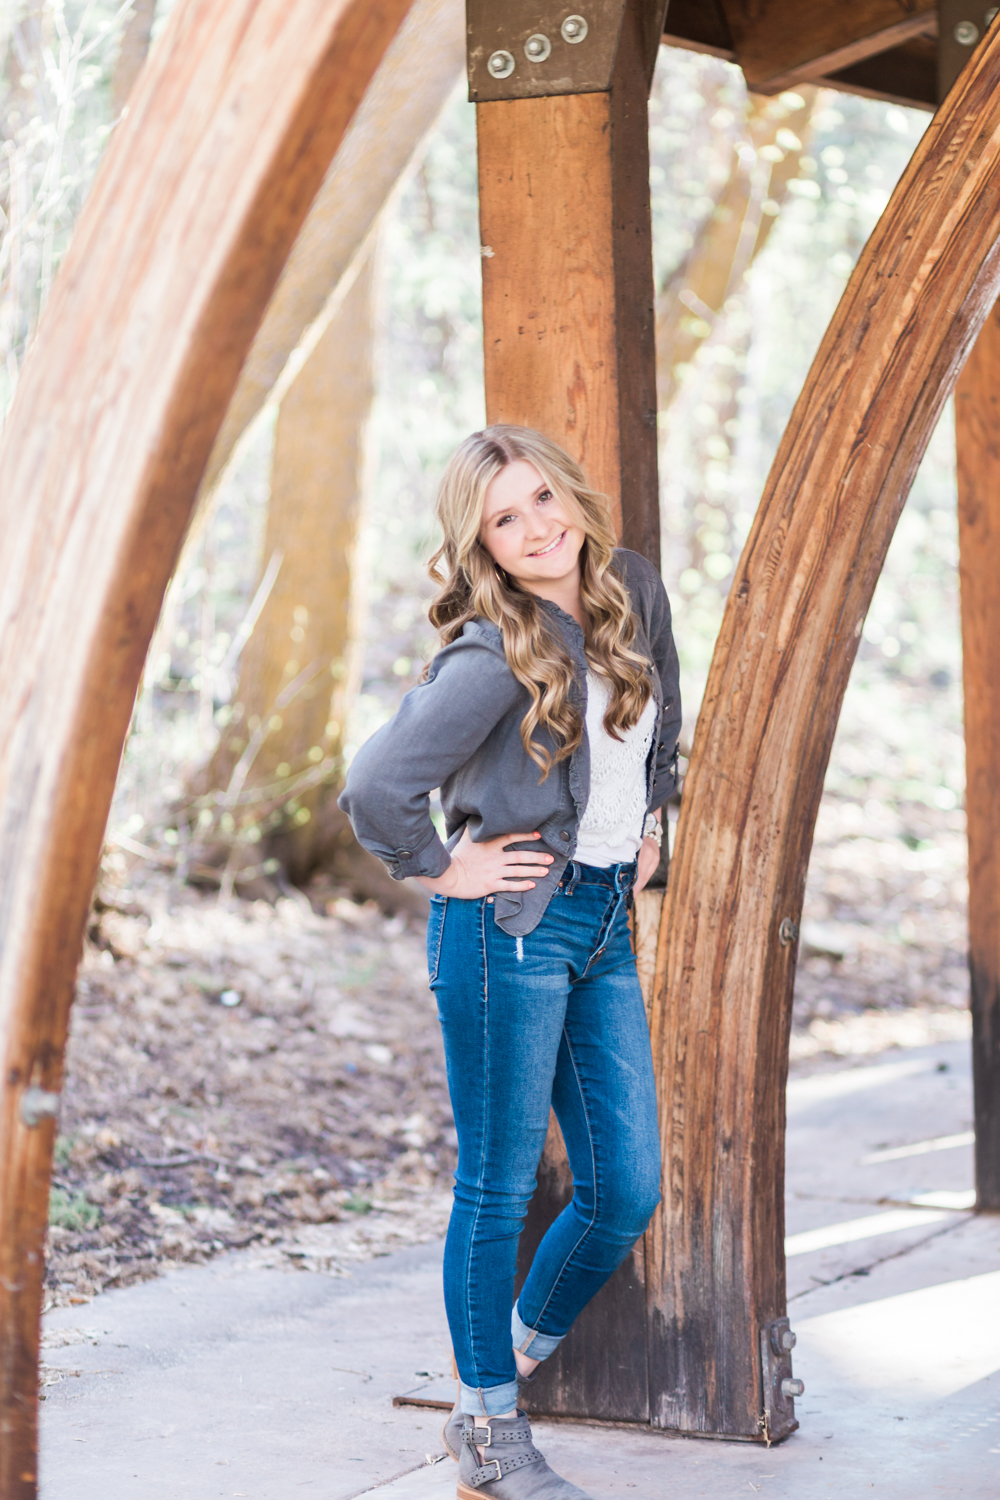 High-school-senior-pictures-whitney-bufton-photography-33.jpg